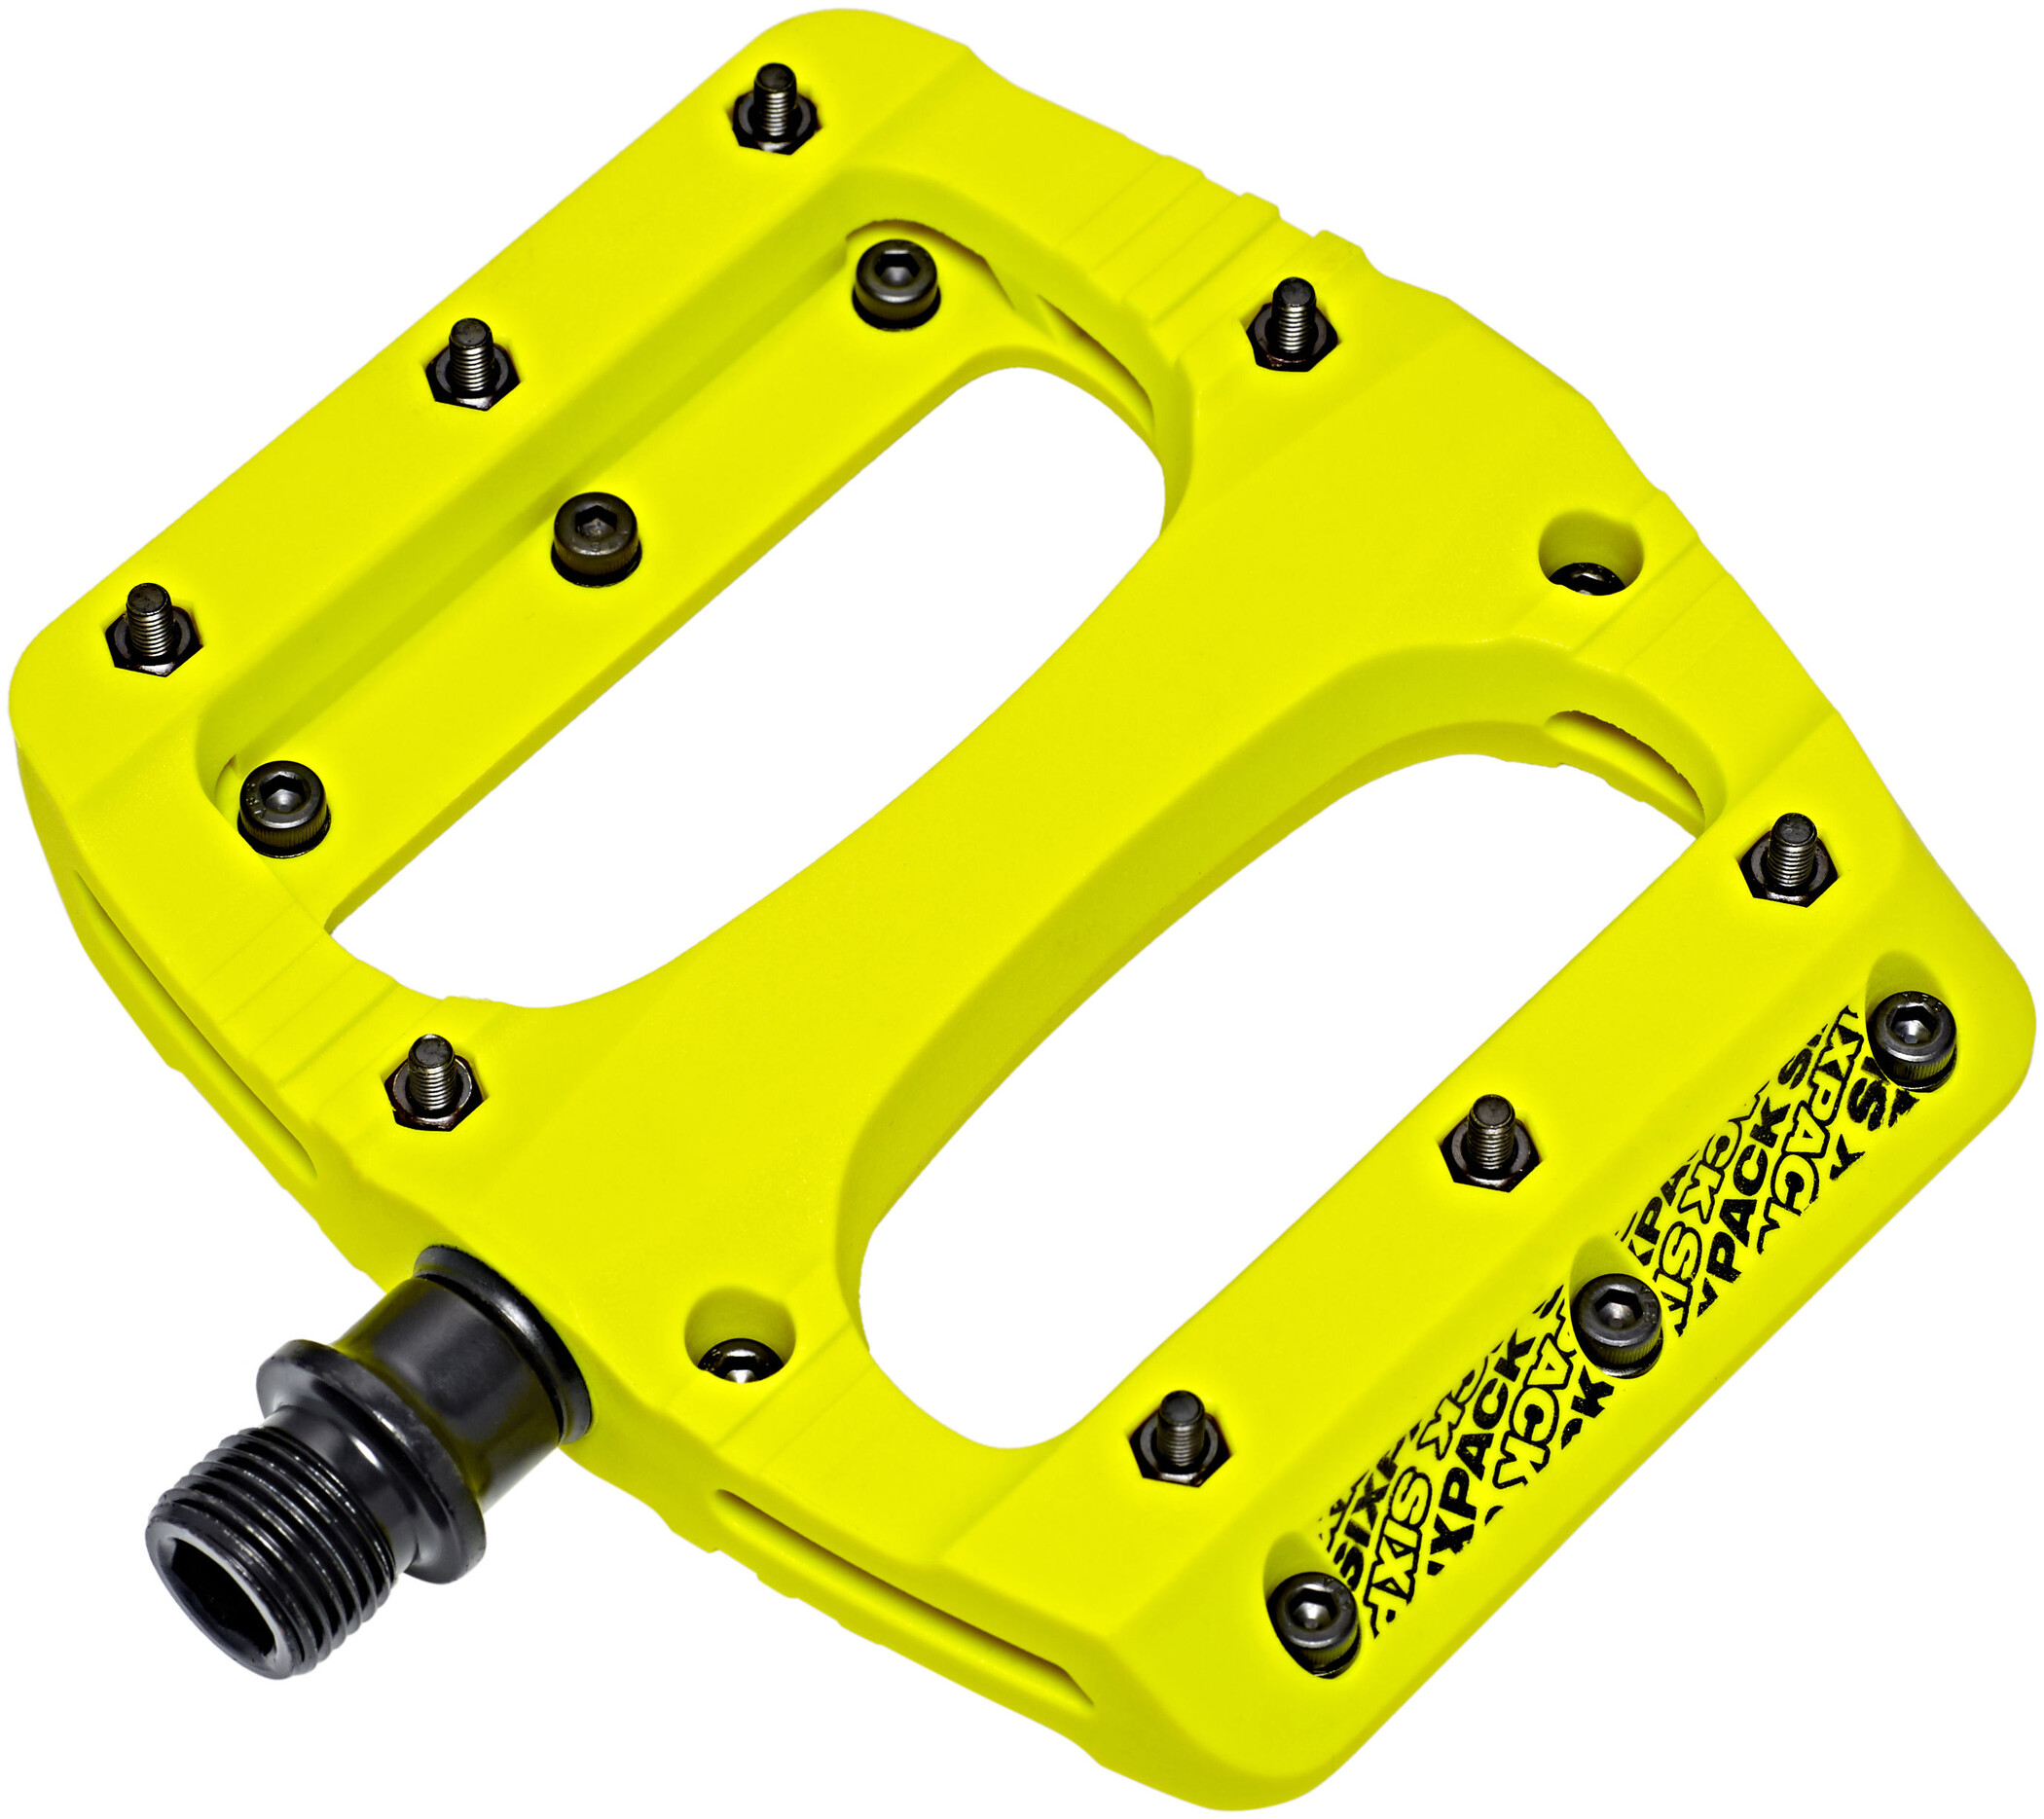 Sixpack Vegas Pedaler, neon-yellow (2019) | Pedals